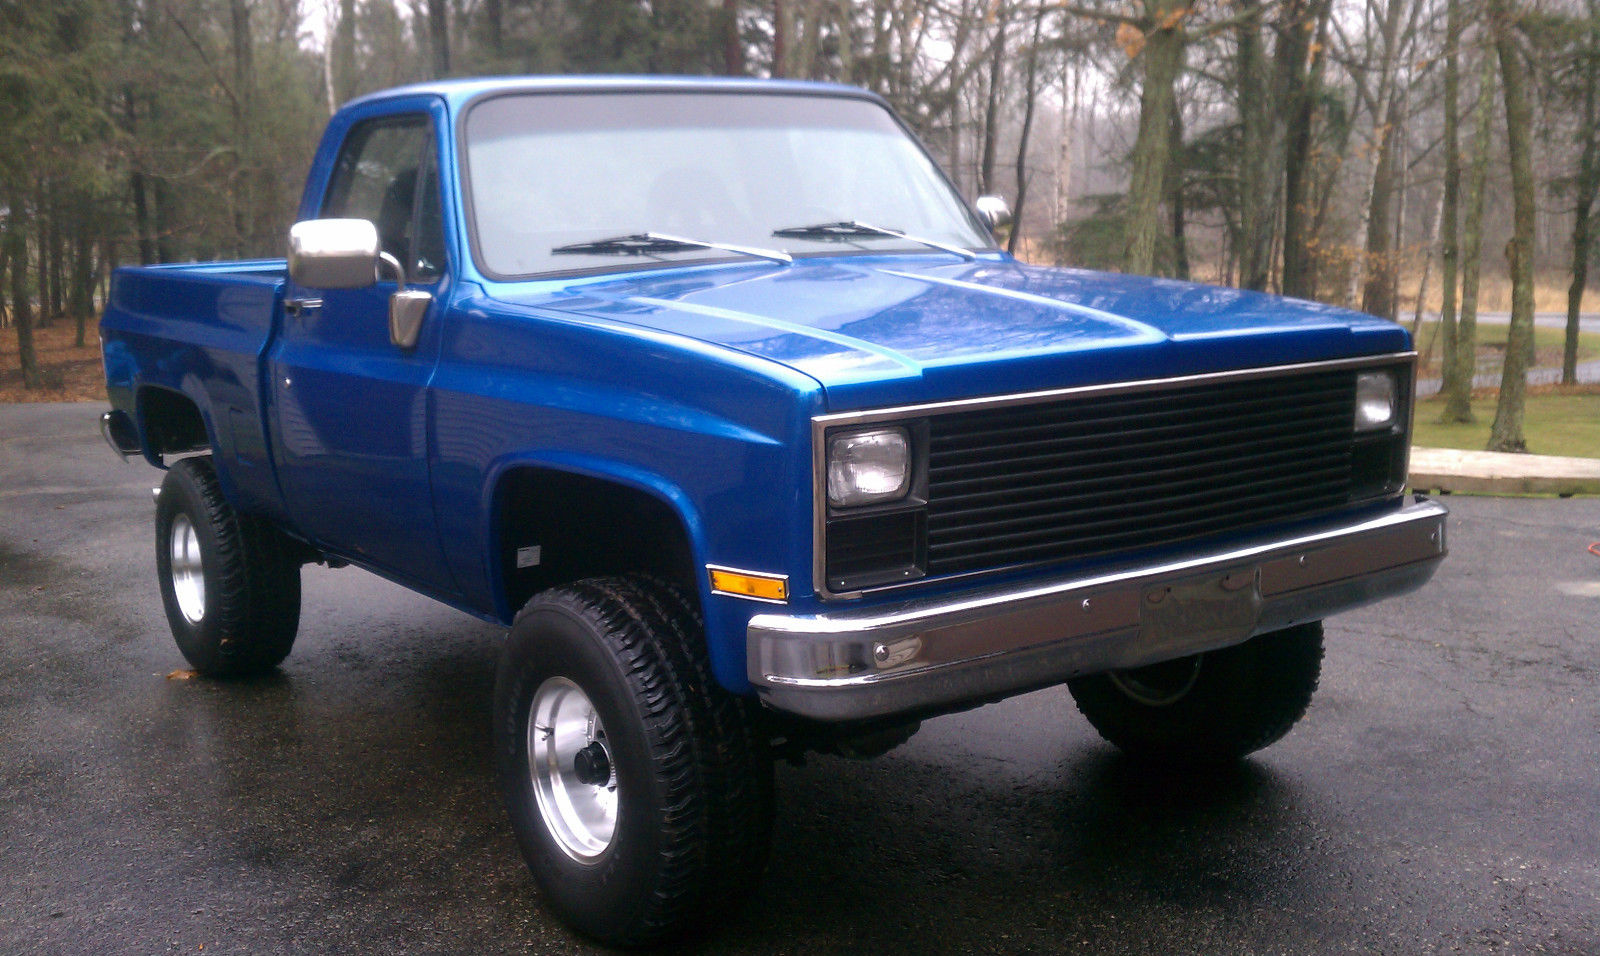 1981 Gmc Sierra 1500 4x4 Truck Shortbox     Same As Chevy